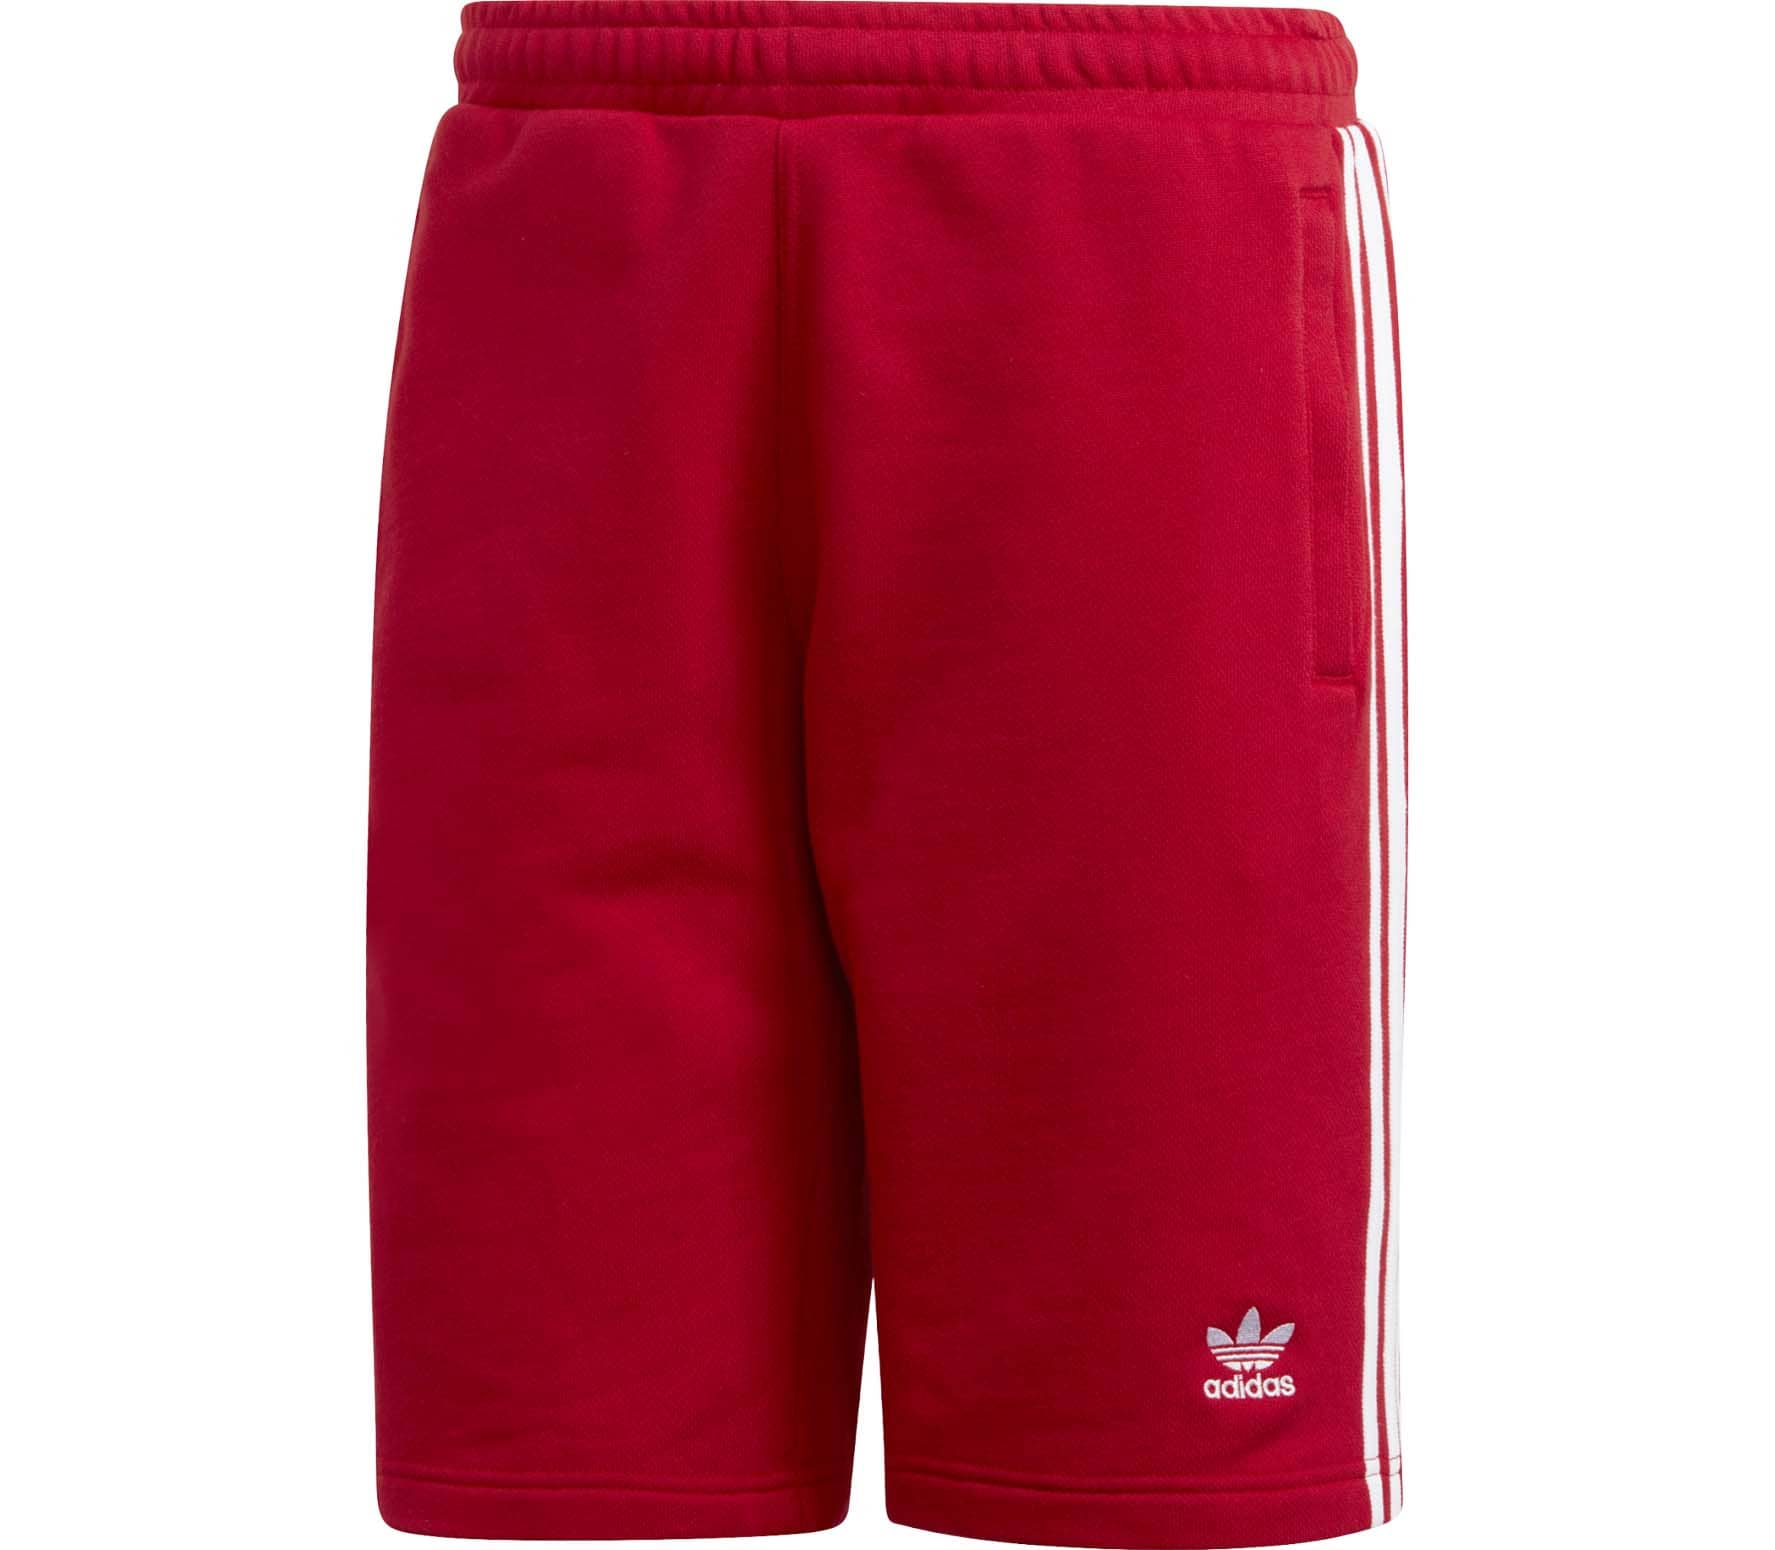 adidas Originals 3 Stripe Herren Shorts rot